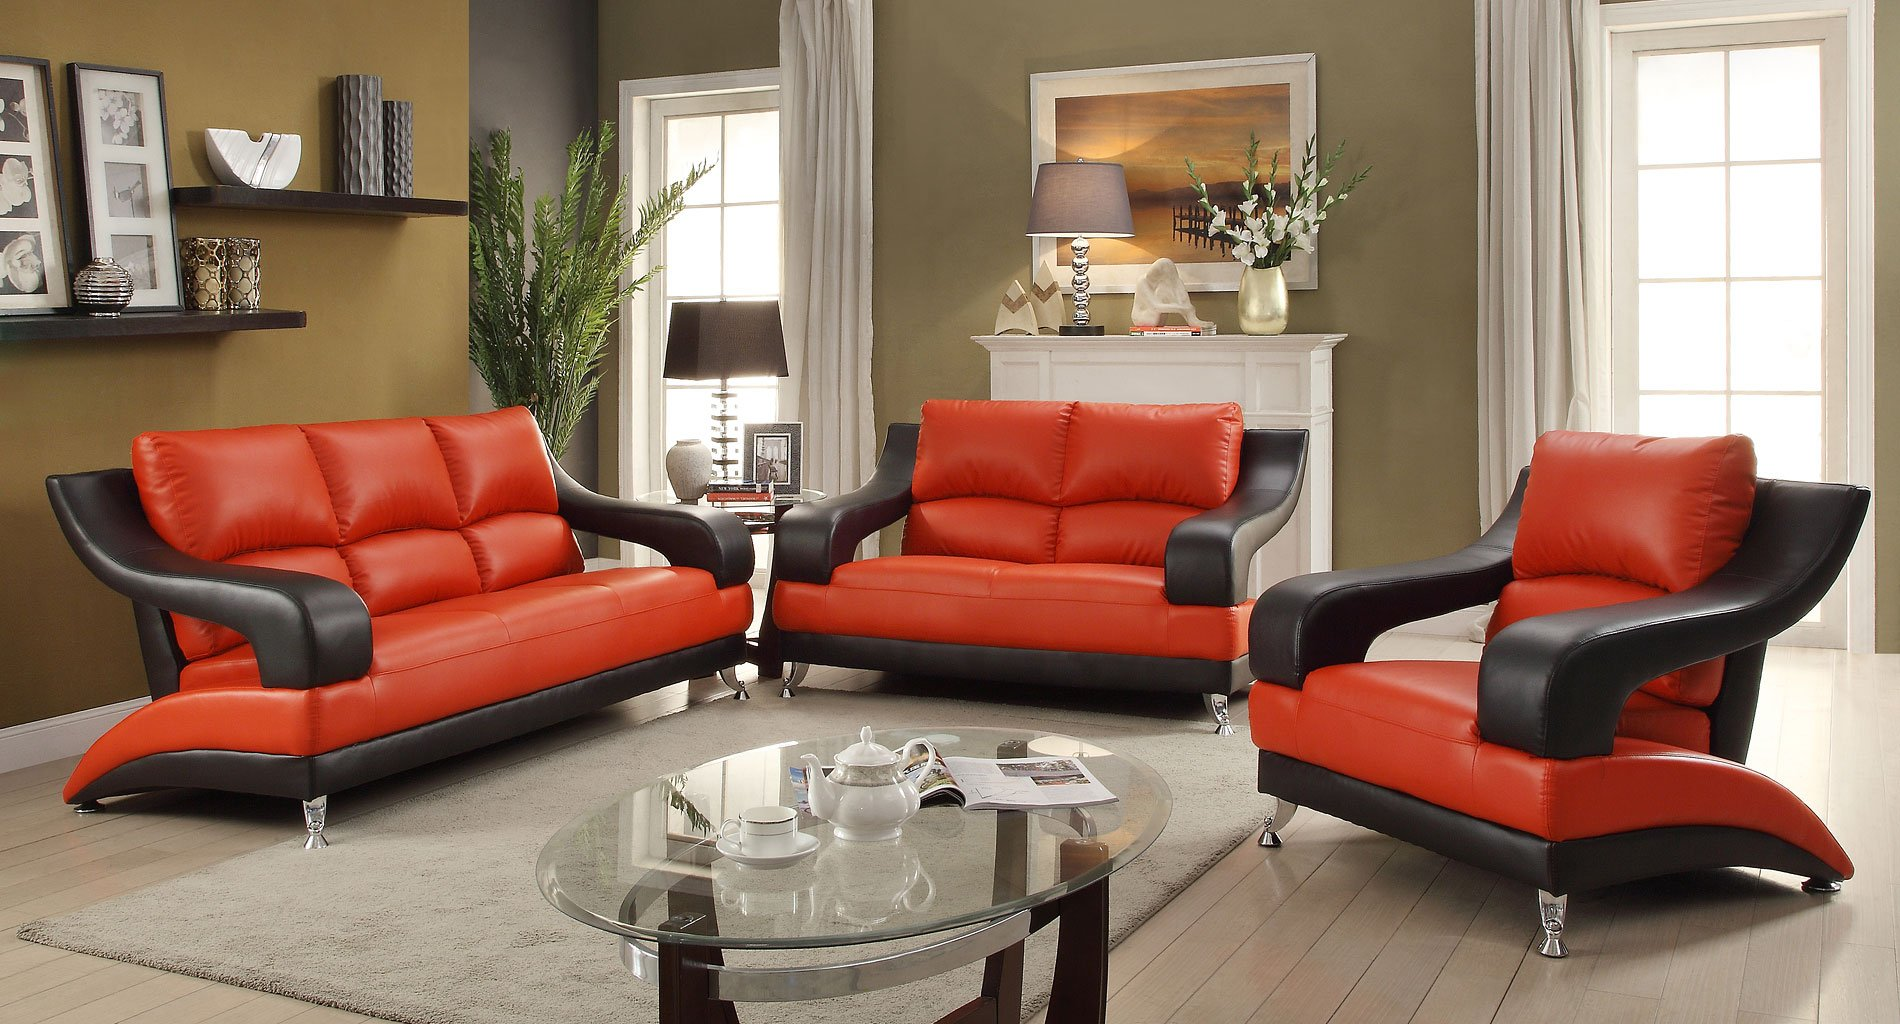 G249 modern living room set red and black living room for Black n red living room